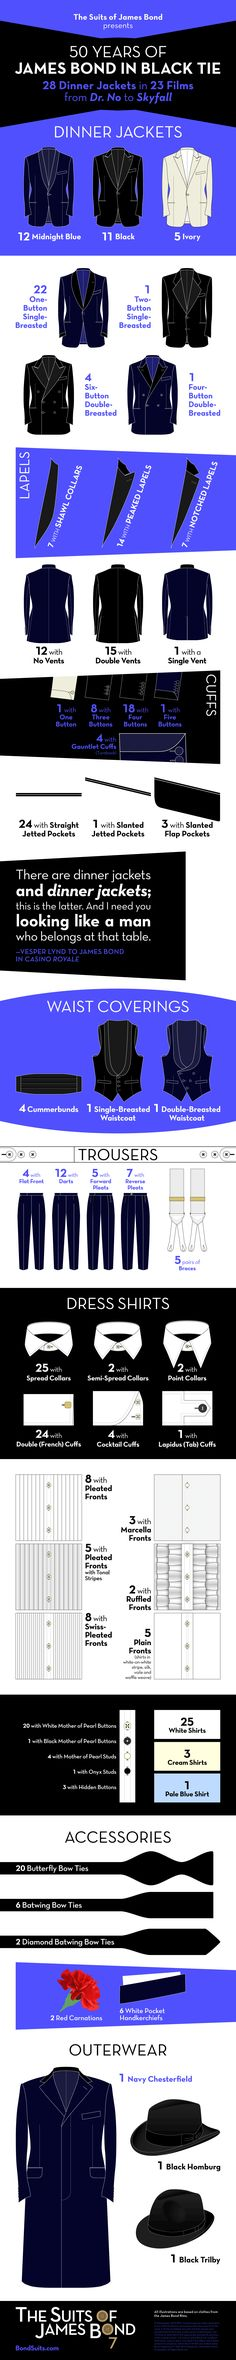 I've created an infographic that breaks down James Bond's 28 black tie outfits by every part of the outfit. All illustrations are based on examples from the James Bond films. For instance, the first three dinner jackets are based on … Continue reading →